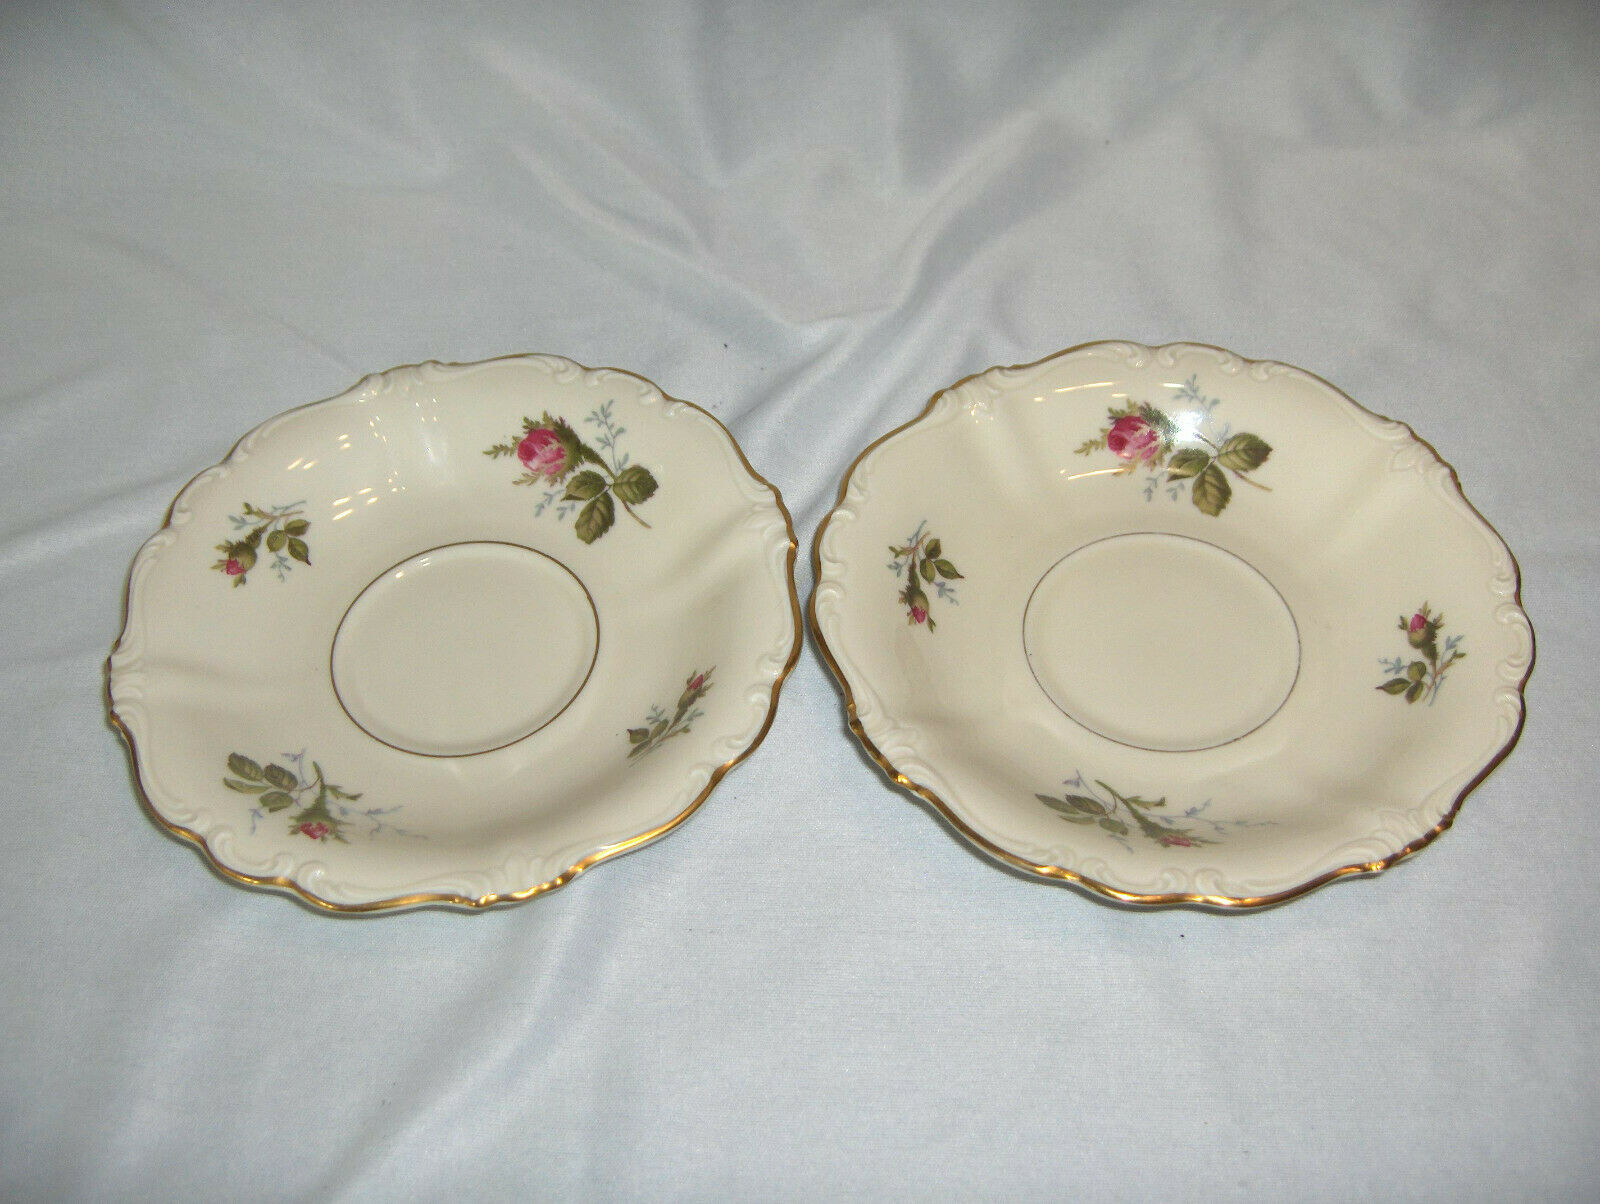 Primary image for 2 Vintage Rosenthal China Pompadour Selb Germany Saucers For Footed Cups NICE